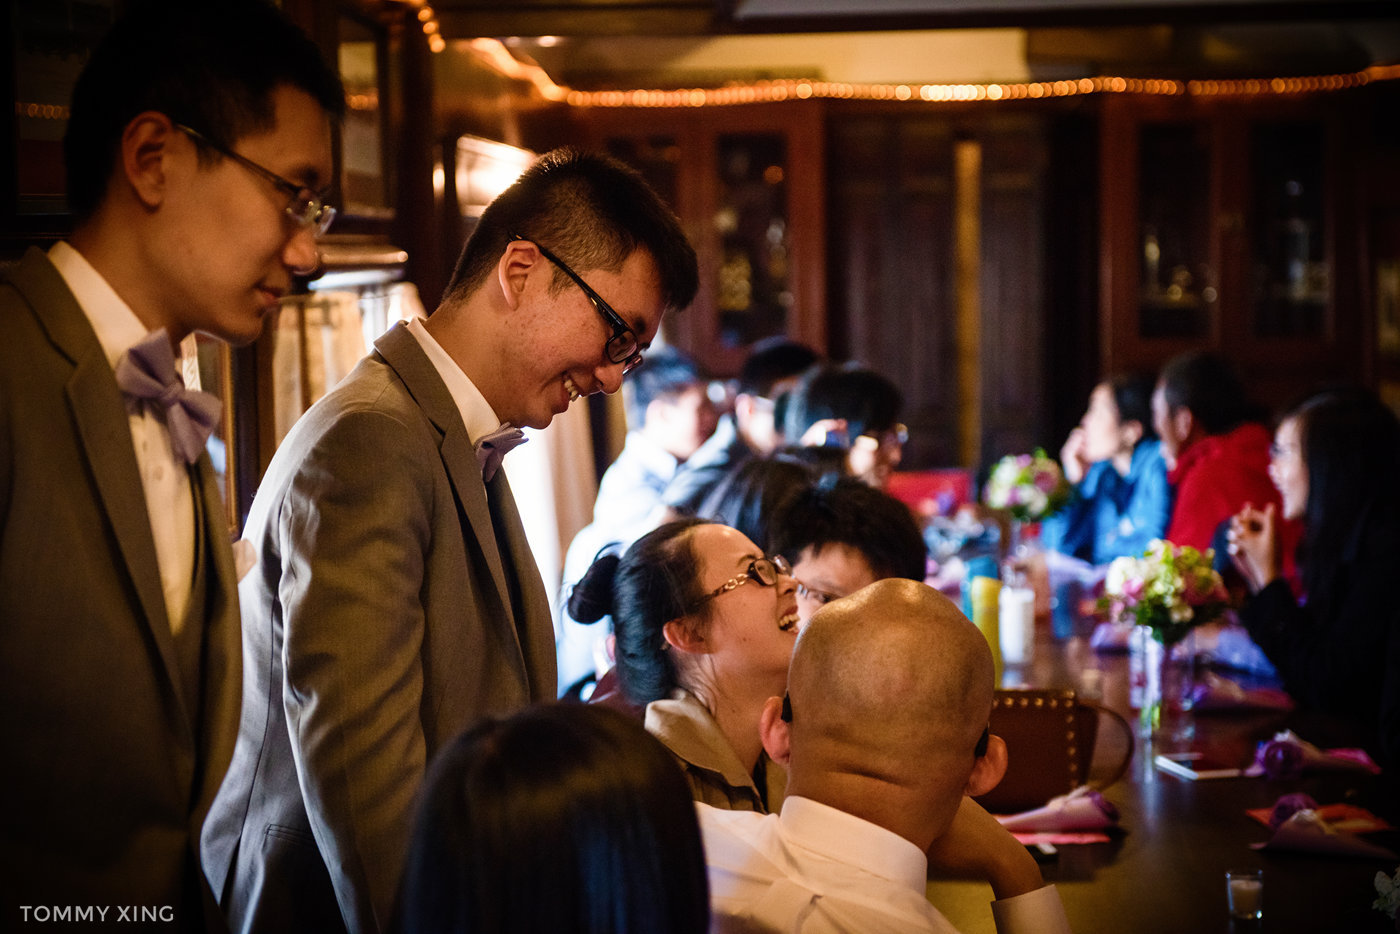 Seattle Wedding and pre wedding Los Angeles Tommy Xing Photography 西雅图洛杉矶旧金山婚礼婚纱照摄影师 159.jpg